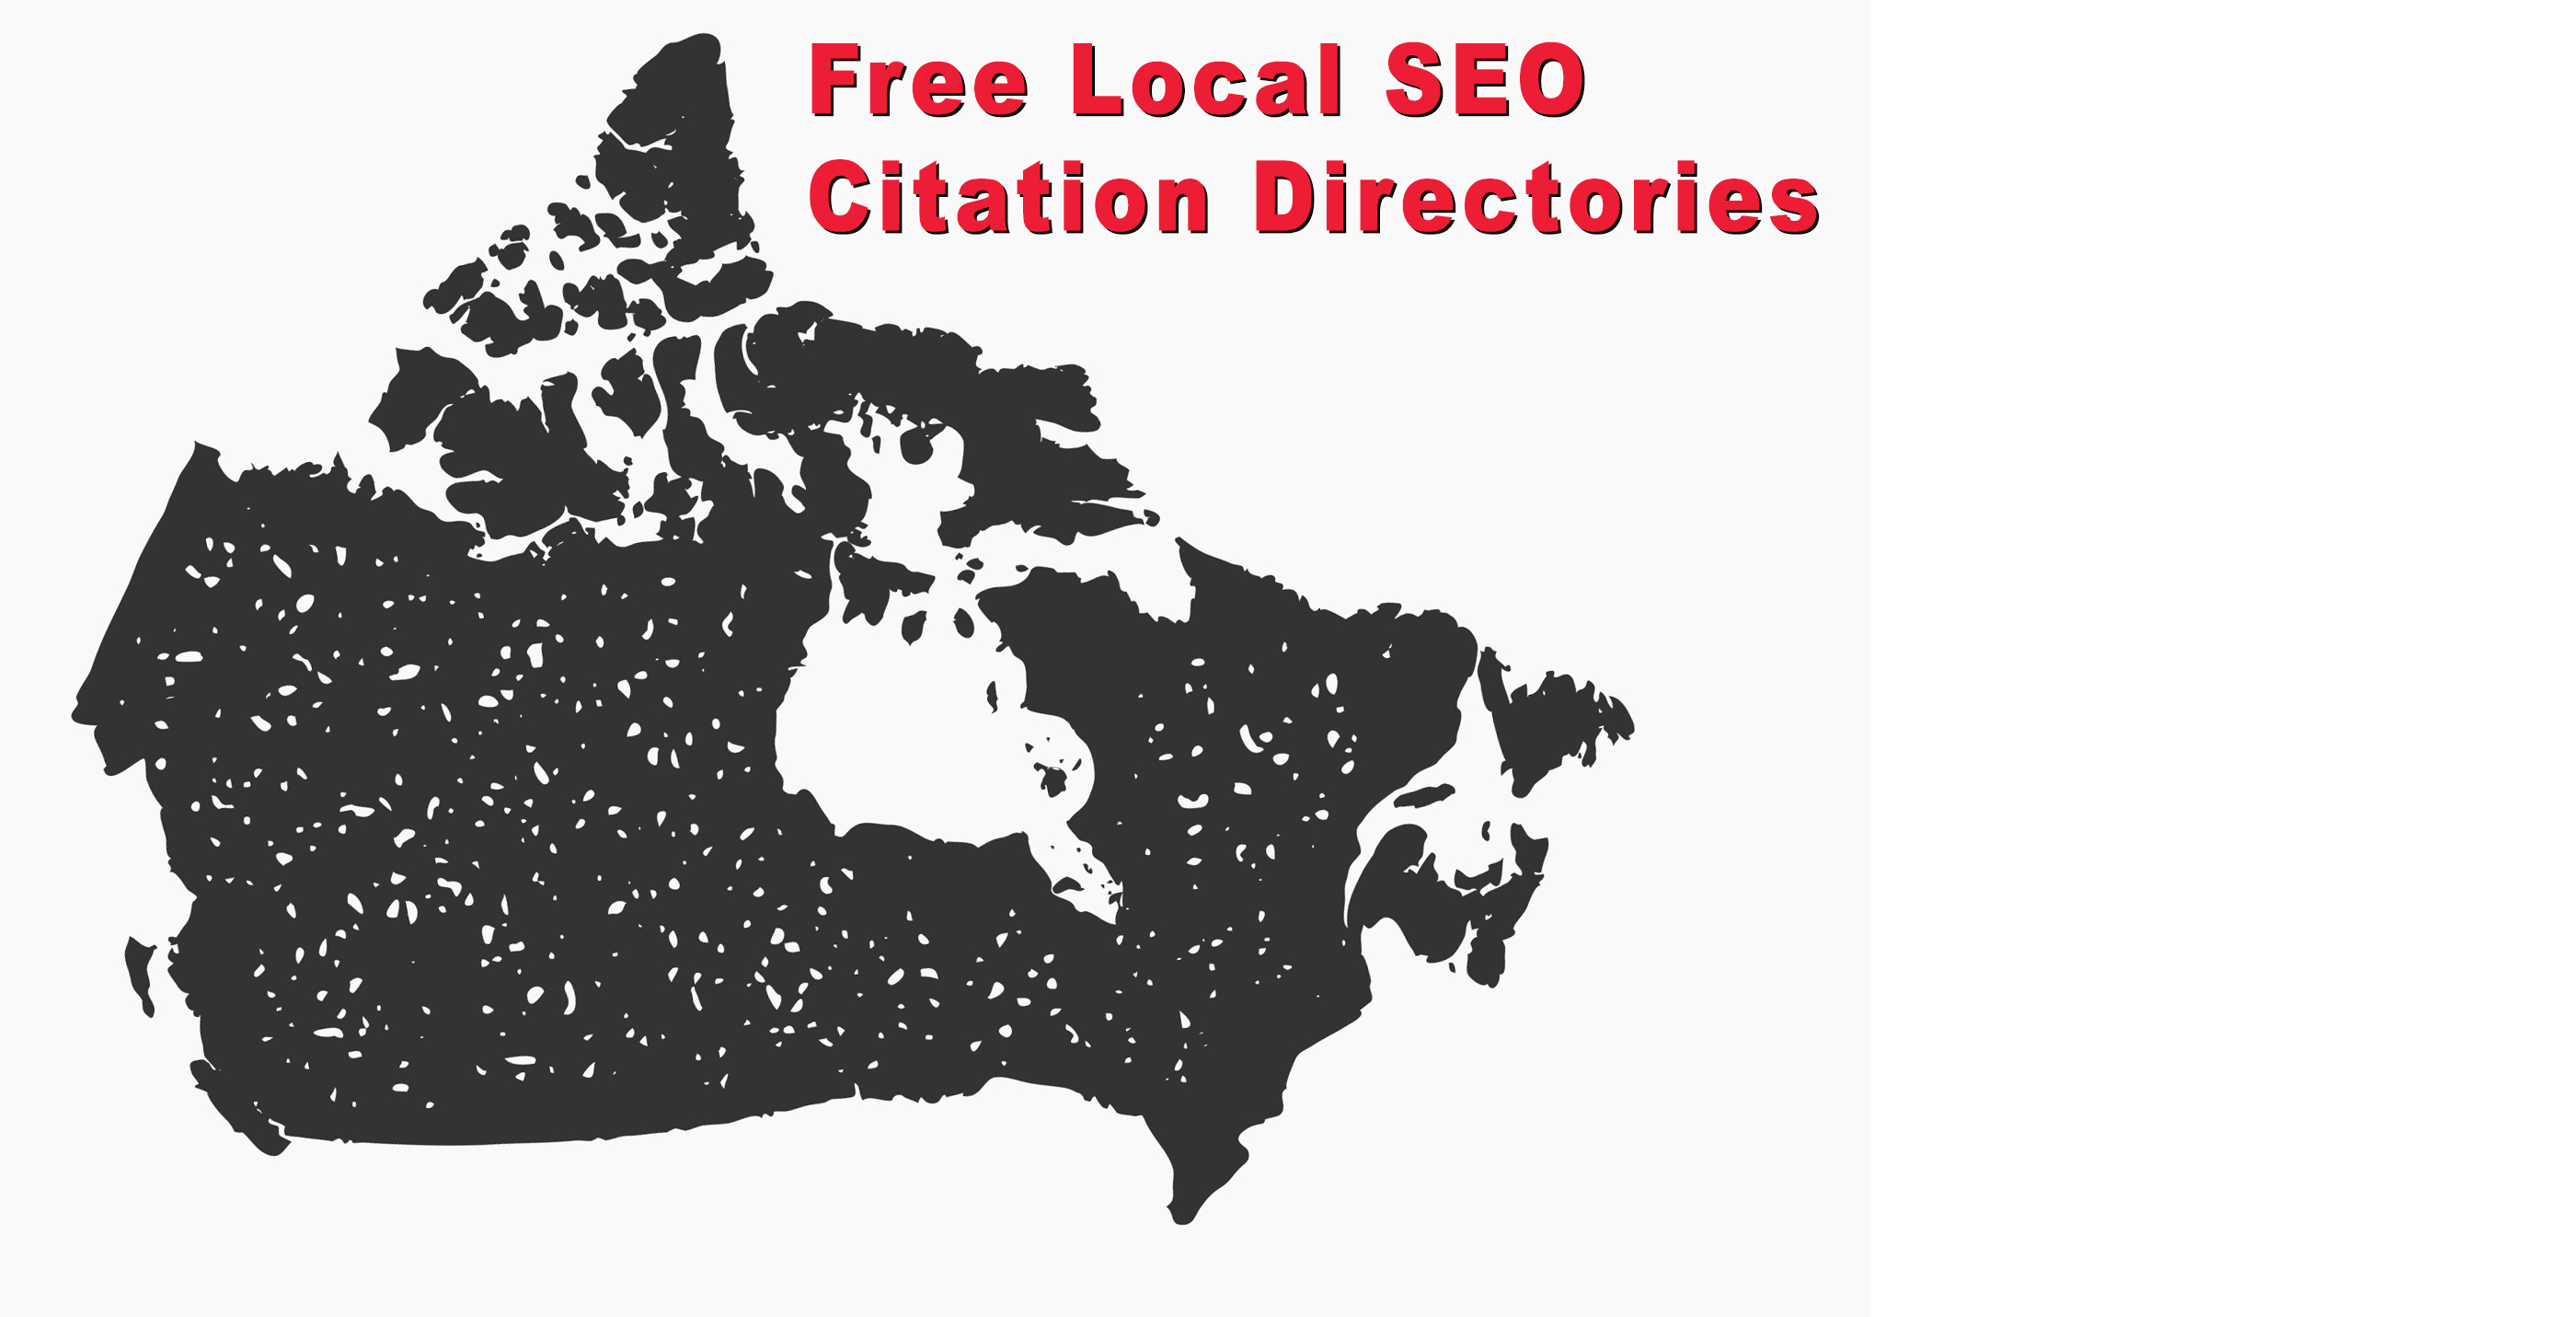 Free Local SEO Citation Directories